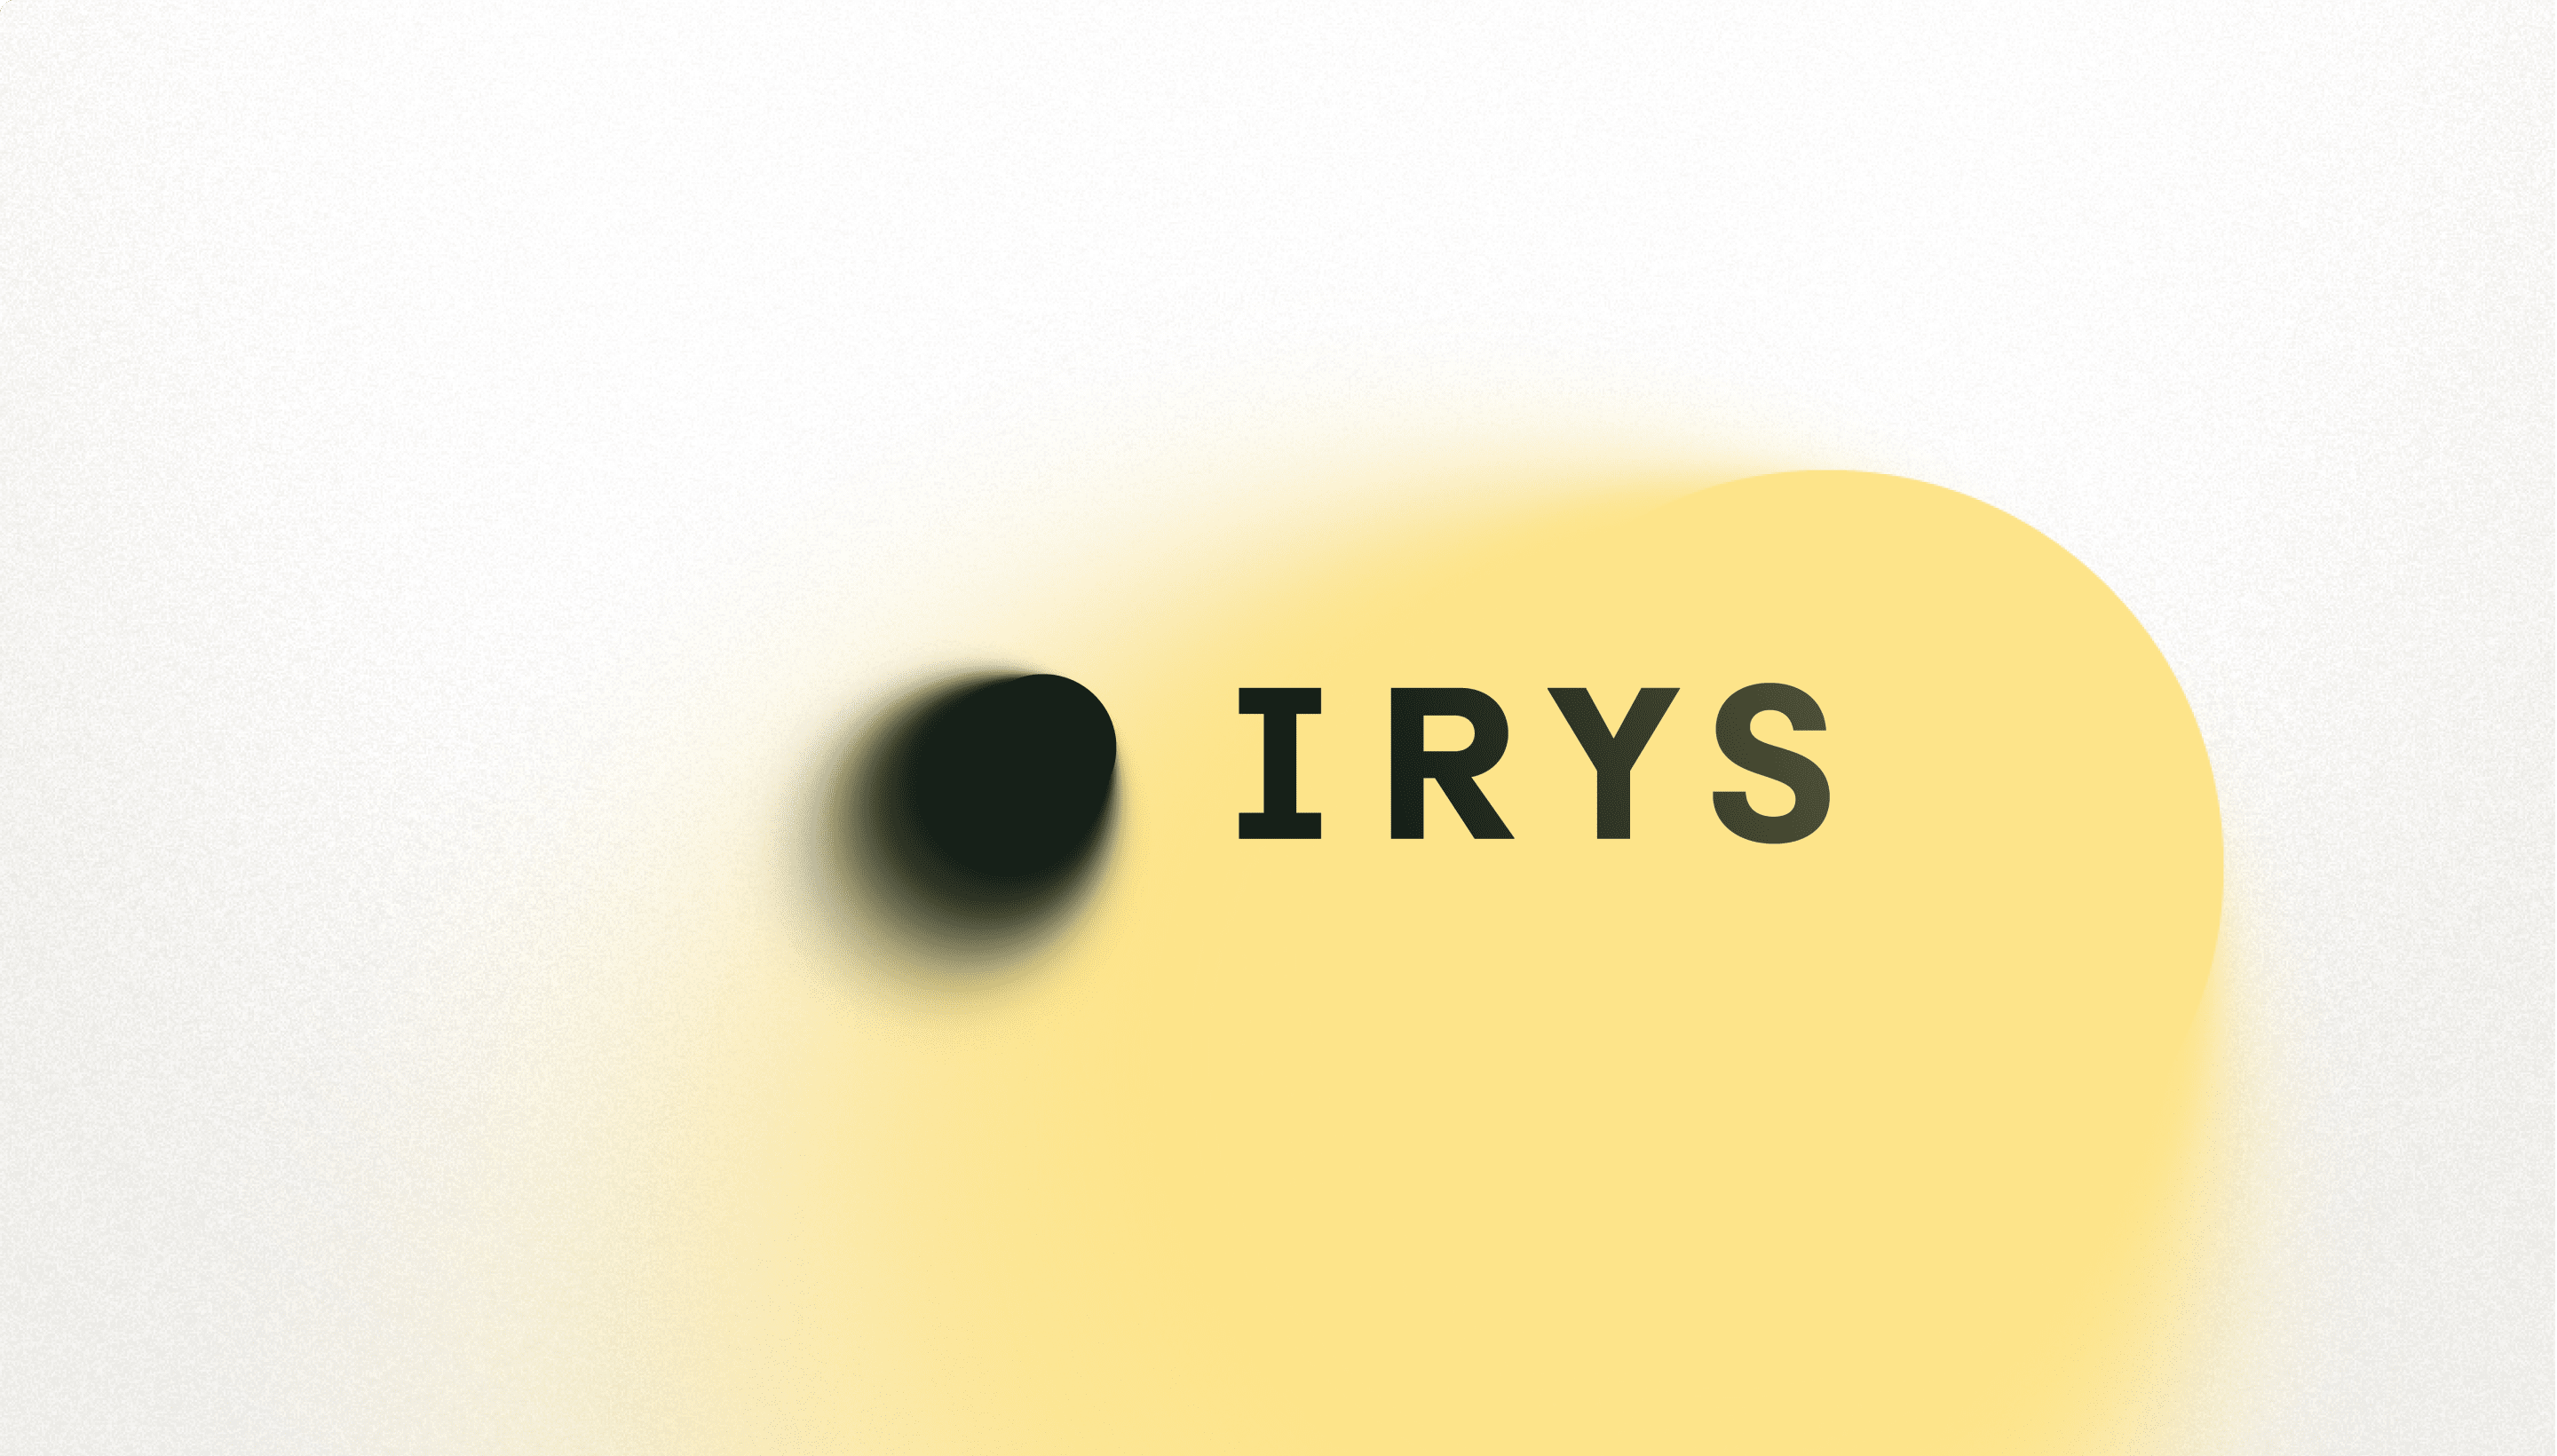 Irys black logo with a fade yellow background